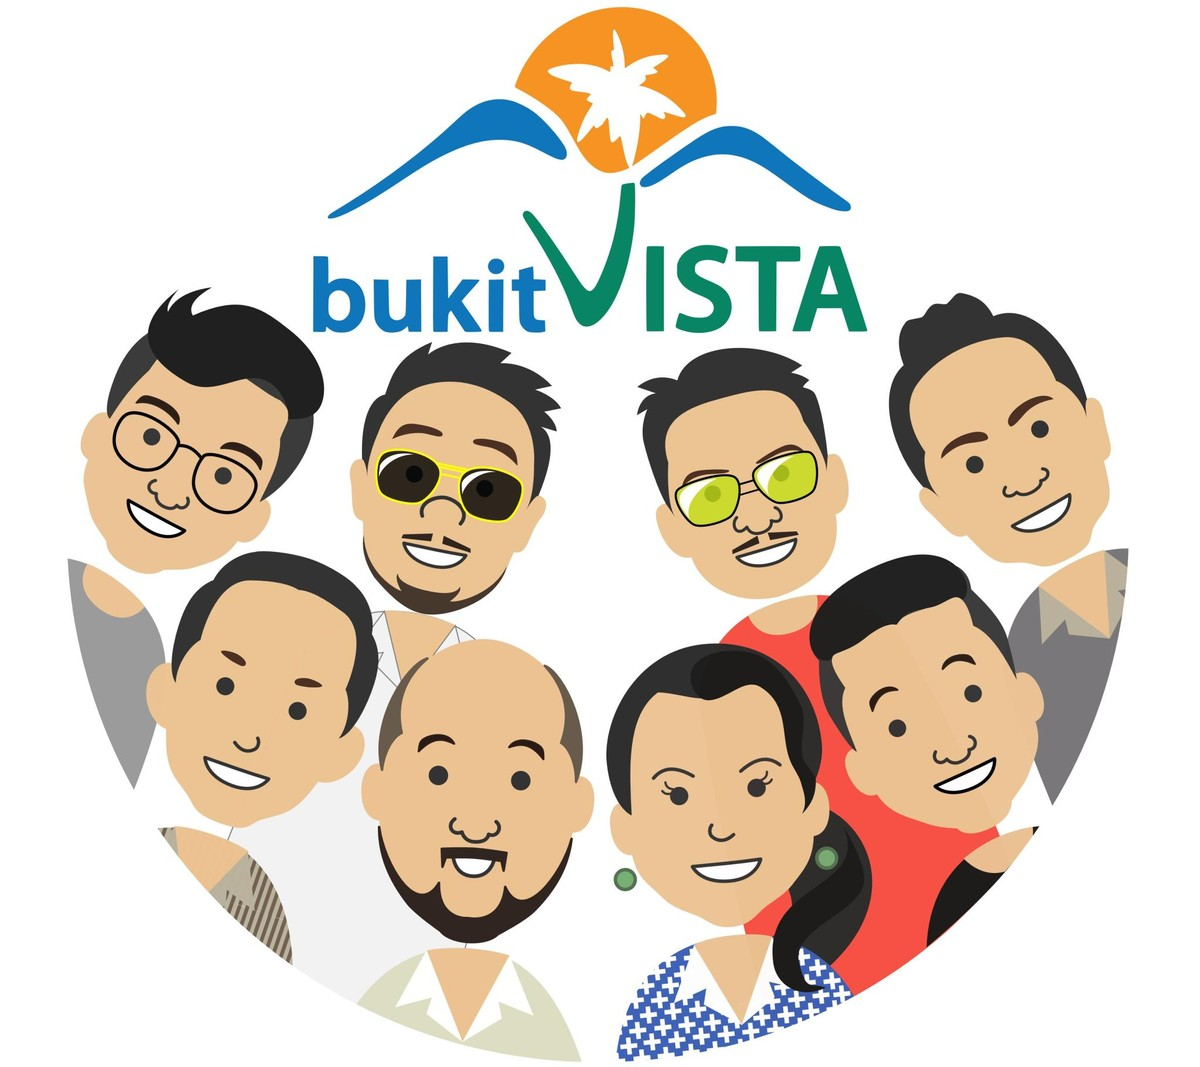 Airbnb Hosts in Bali with BukitVista hospitality services.